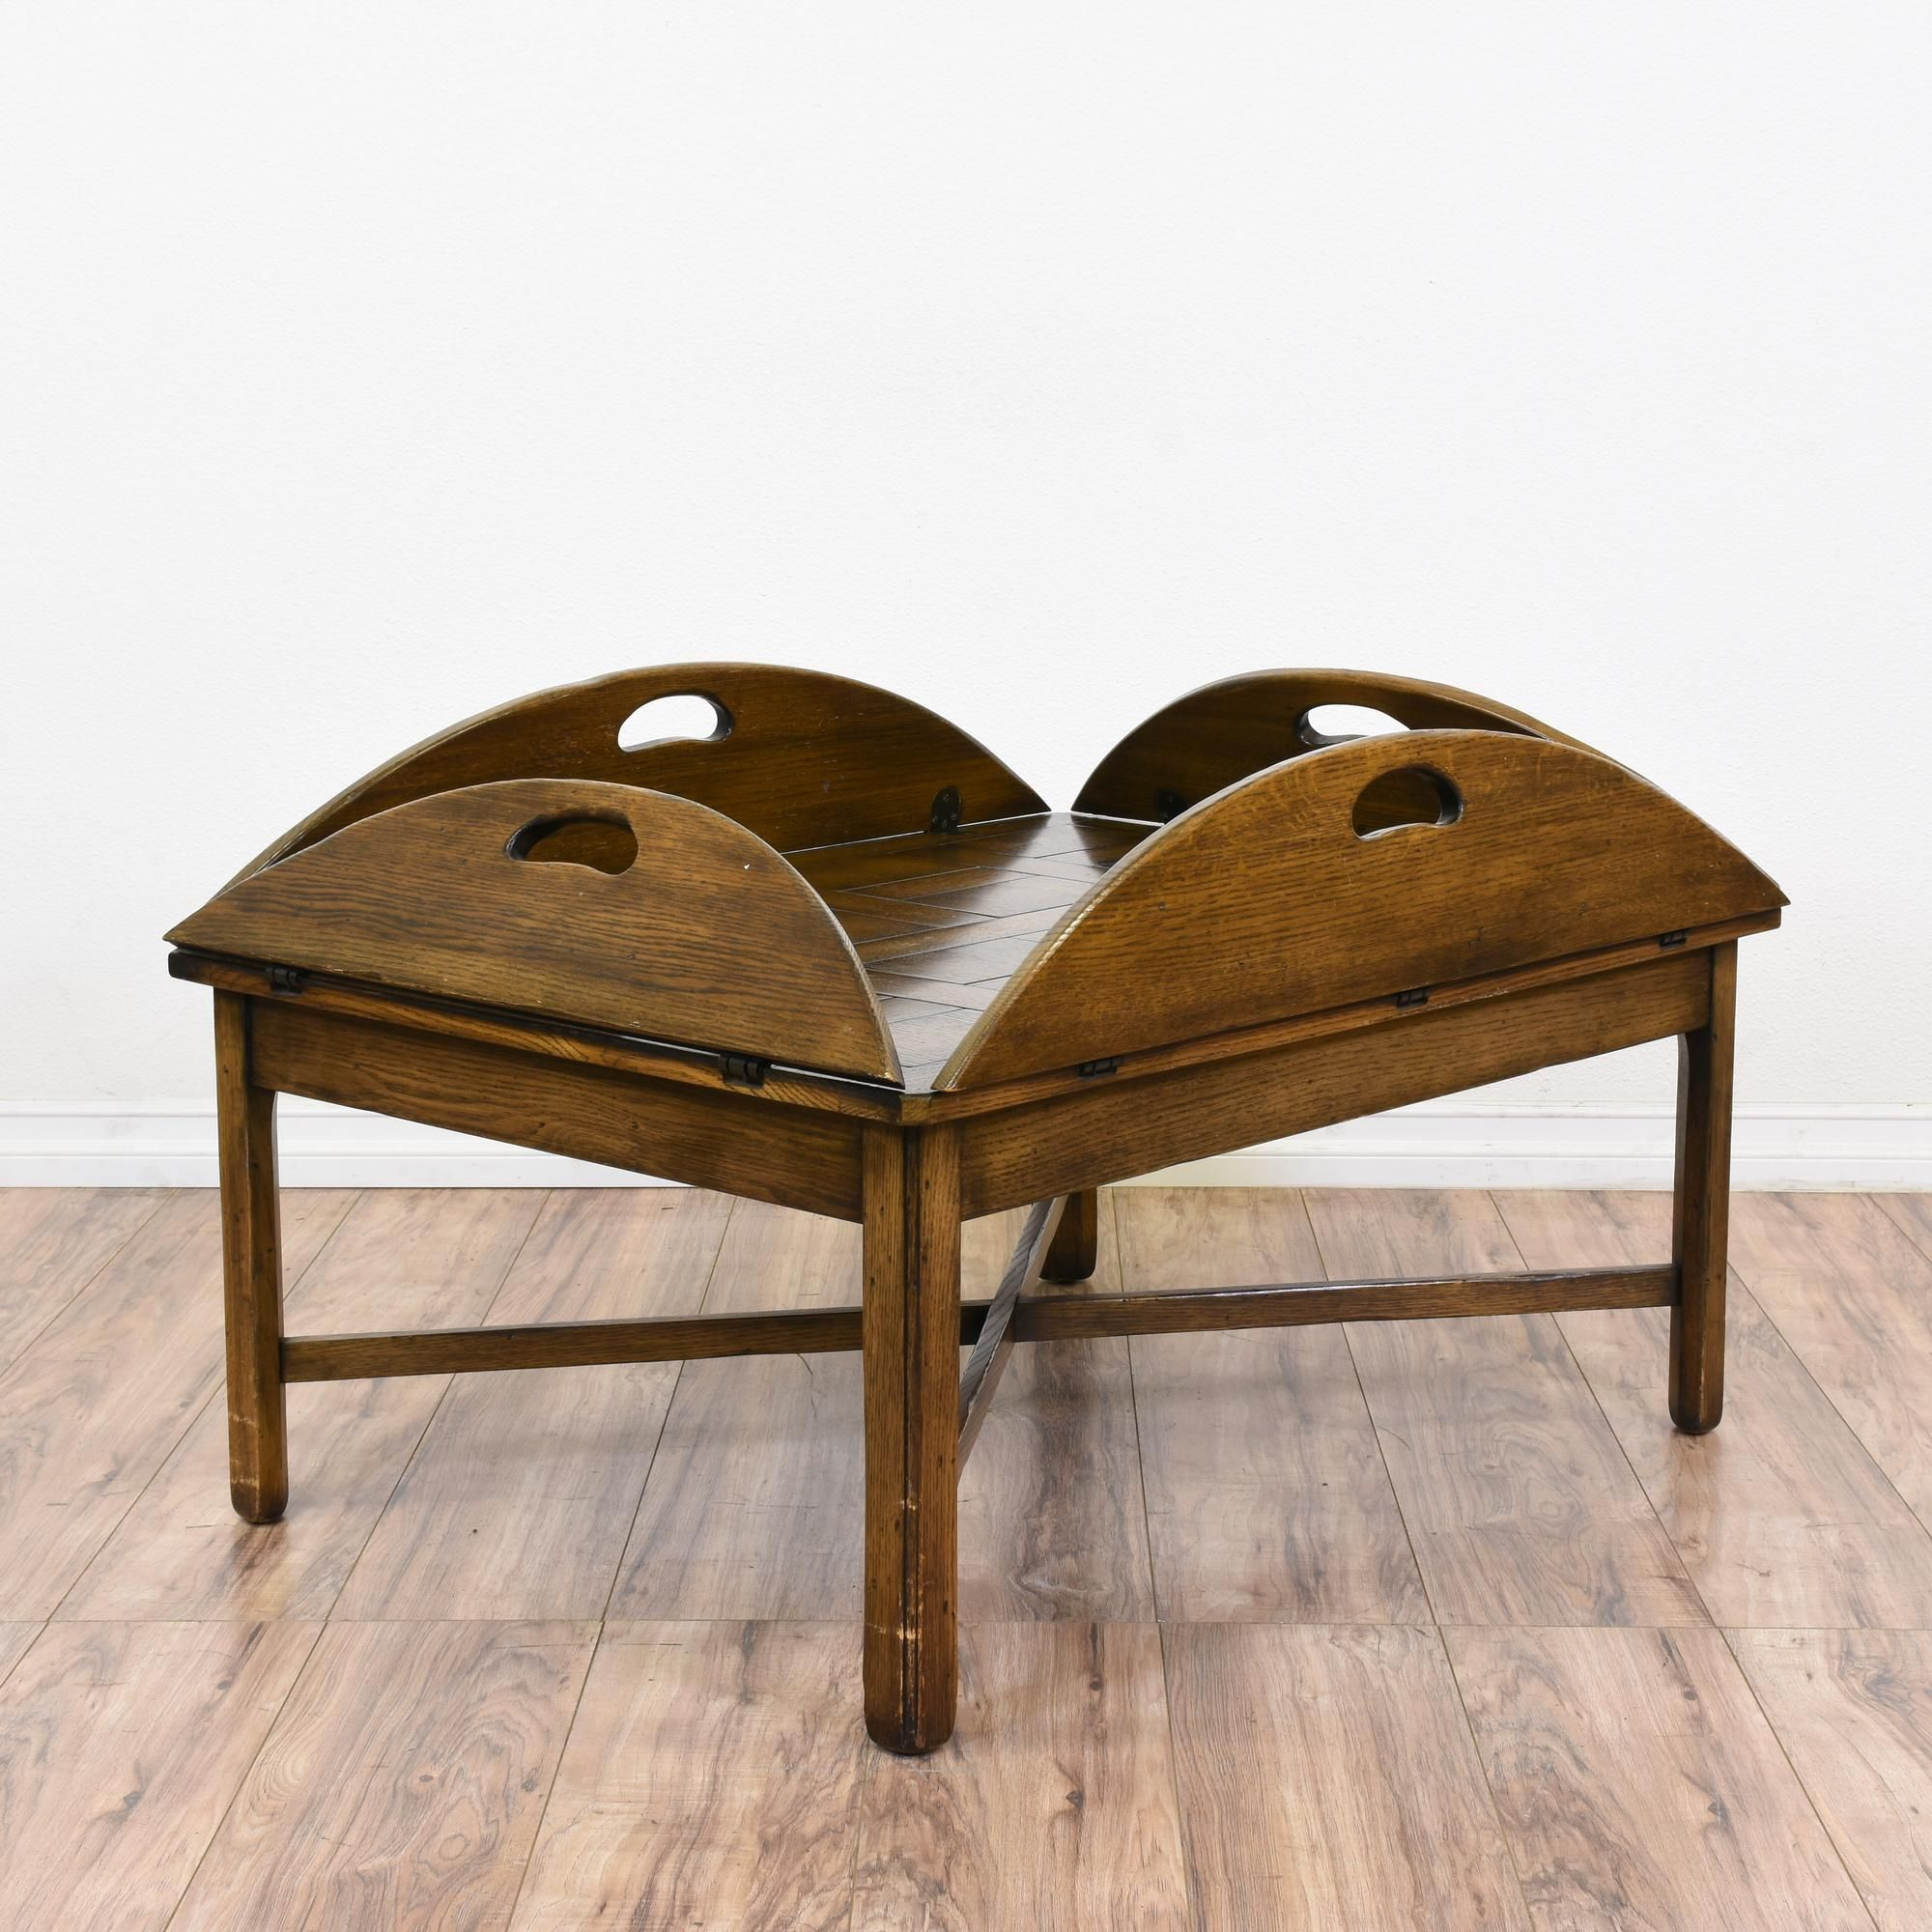 This Drop Leaf Coffee Table Is Featured In A Solid Wood With A